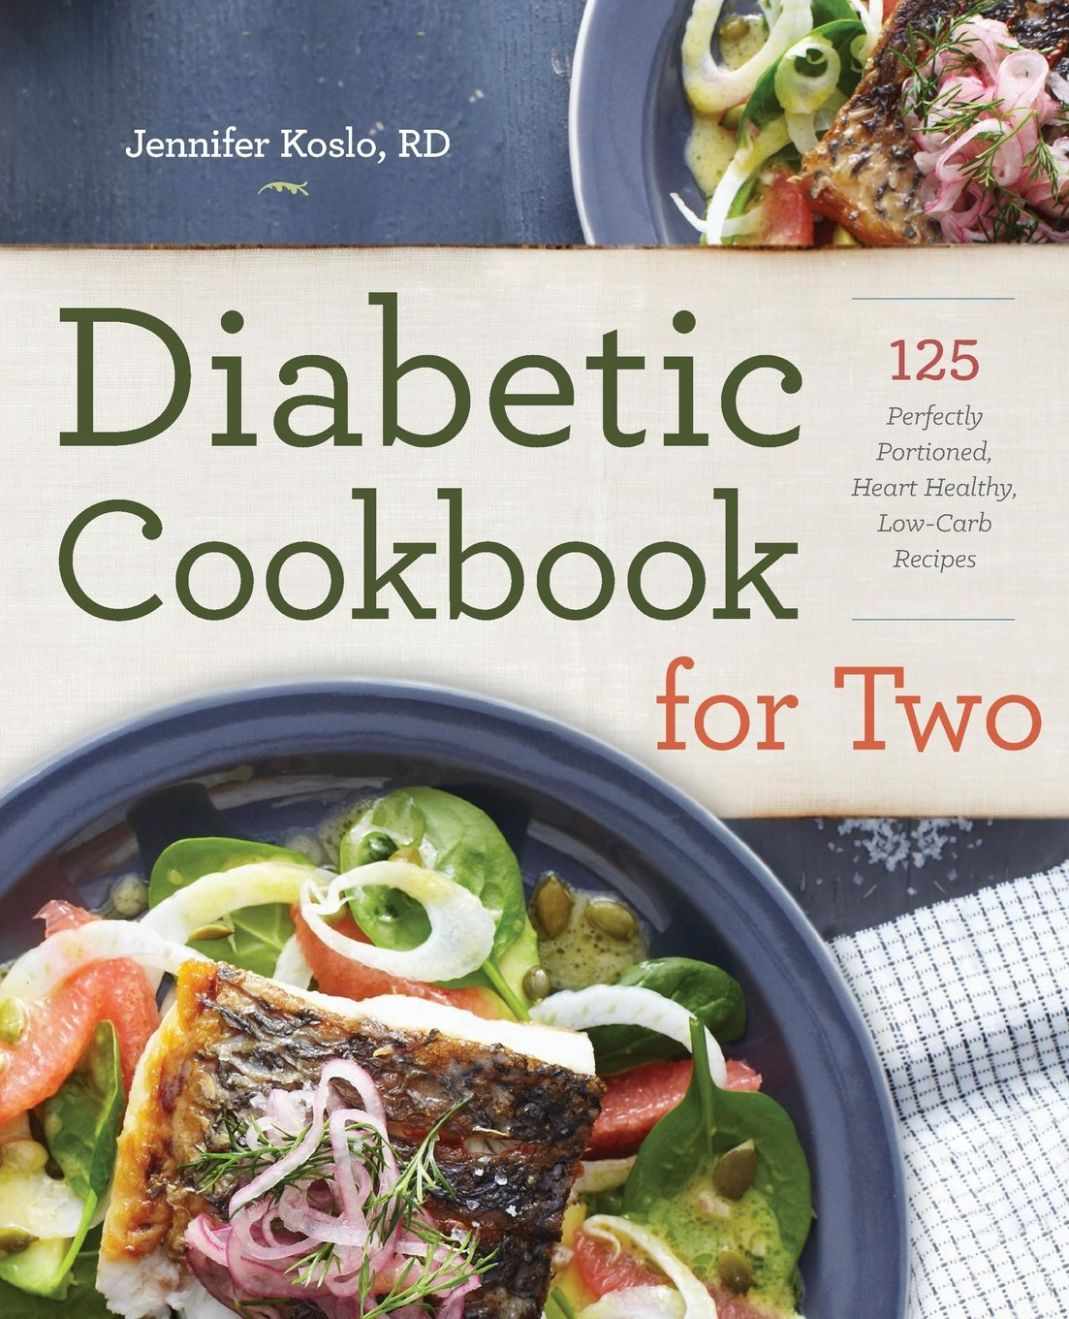 Diabetic Cookbook for Two: 9 Perfectly Portioned, Heart-Healthy ...